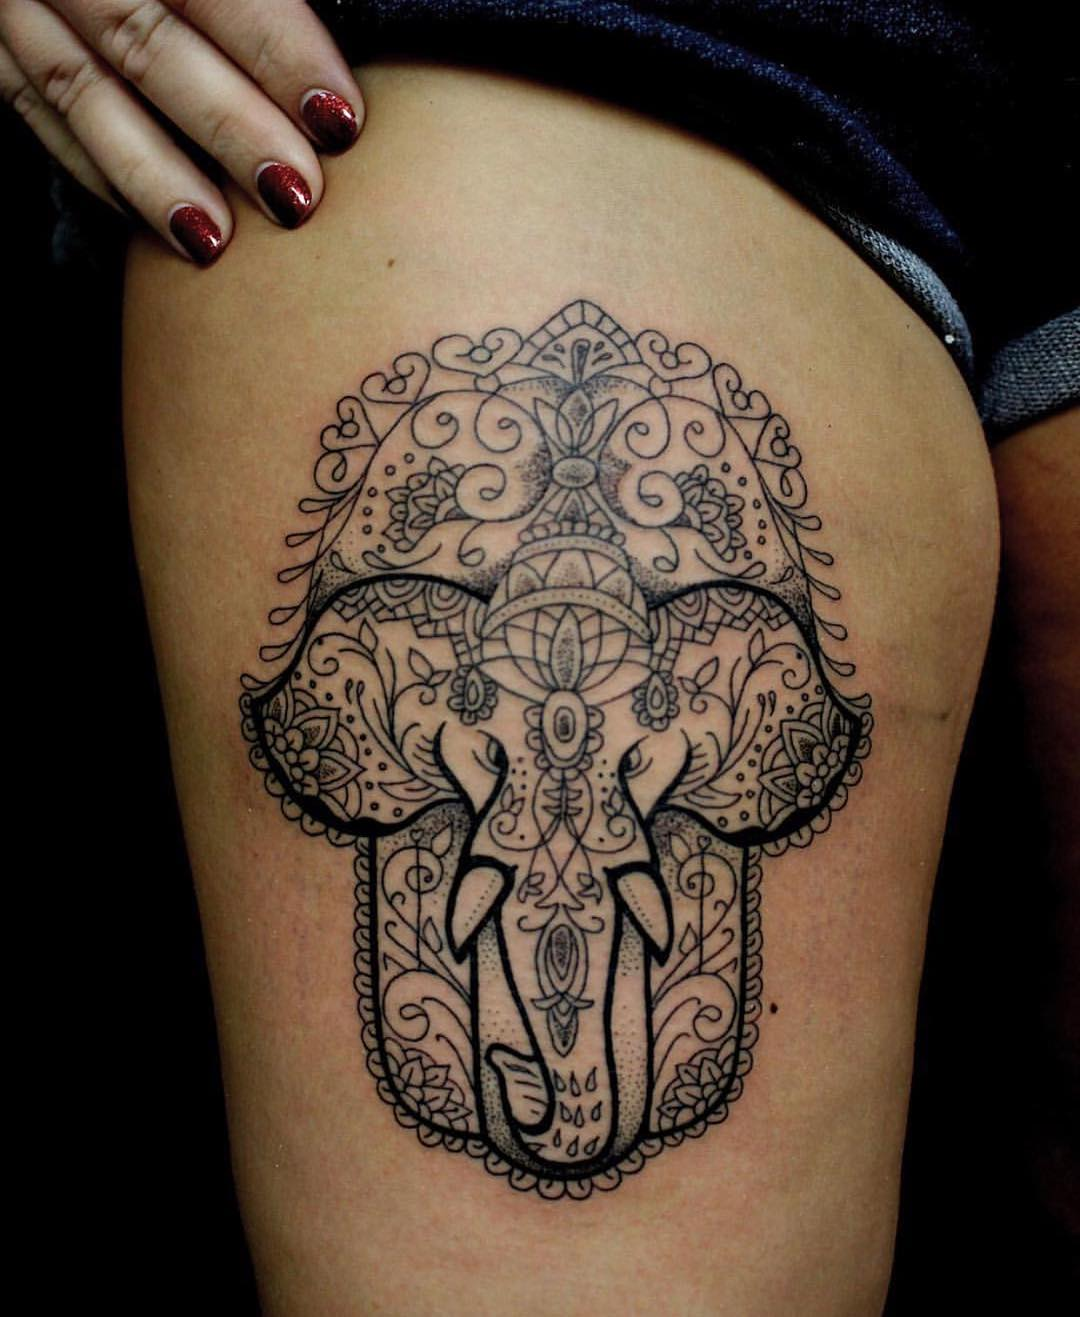 125+ Cool Elephant Tattoo Designs - Deep Meaning and Symbolism